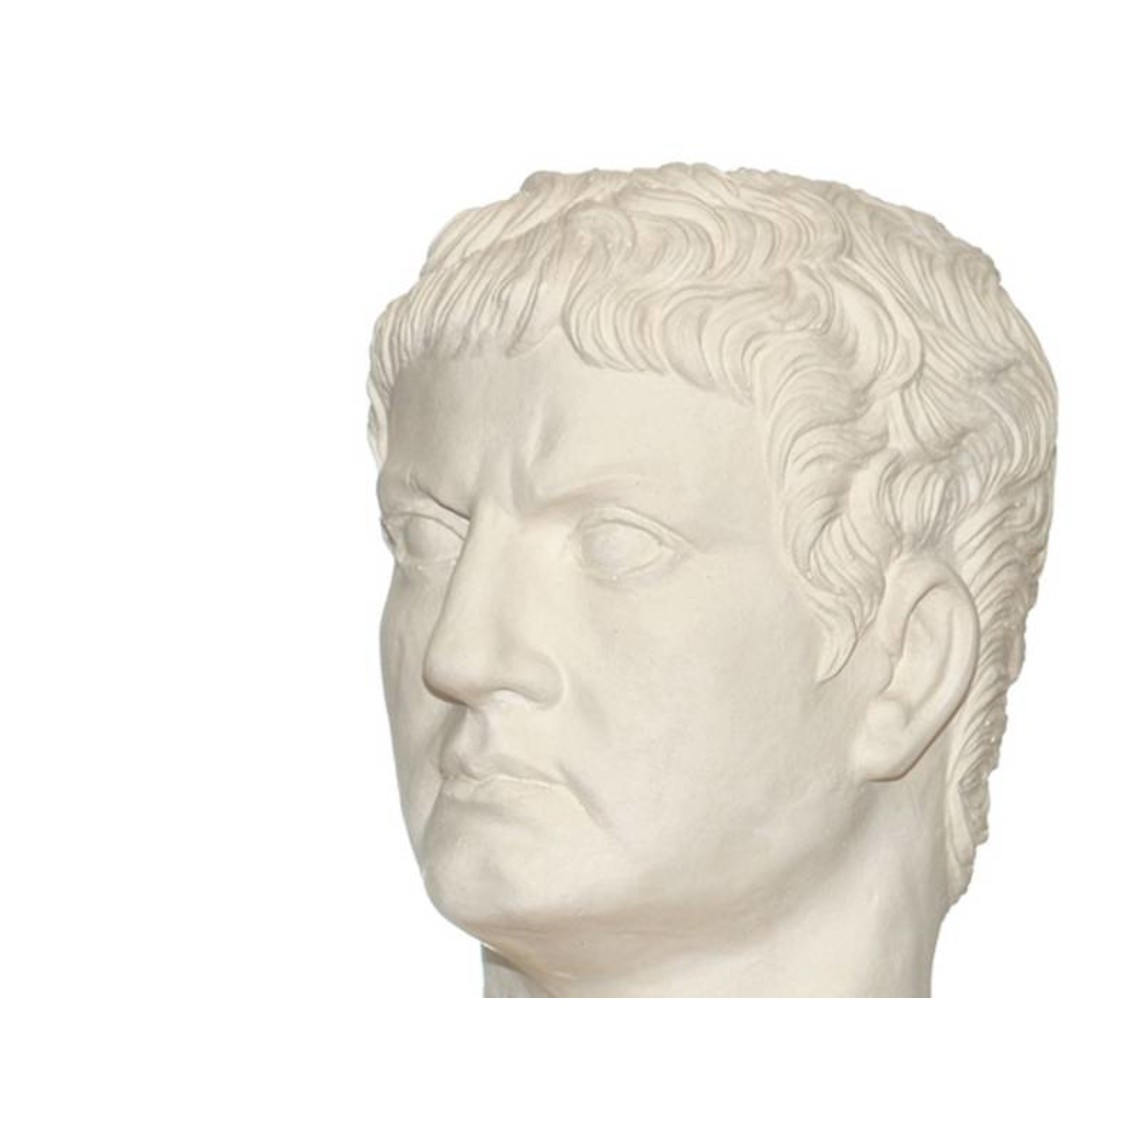 Busto general Marcus Agrippa